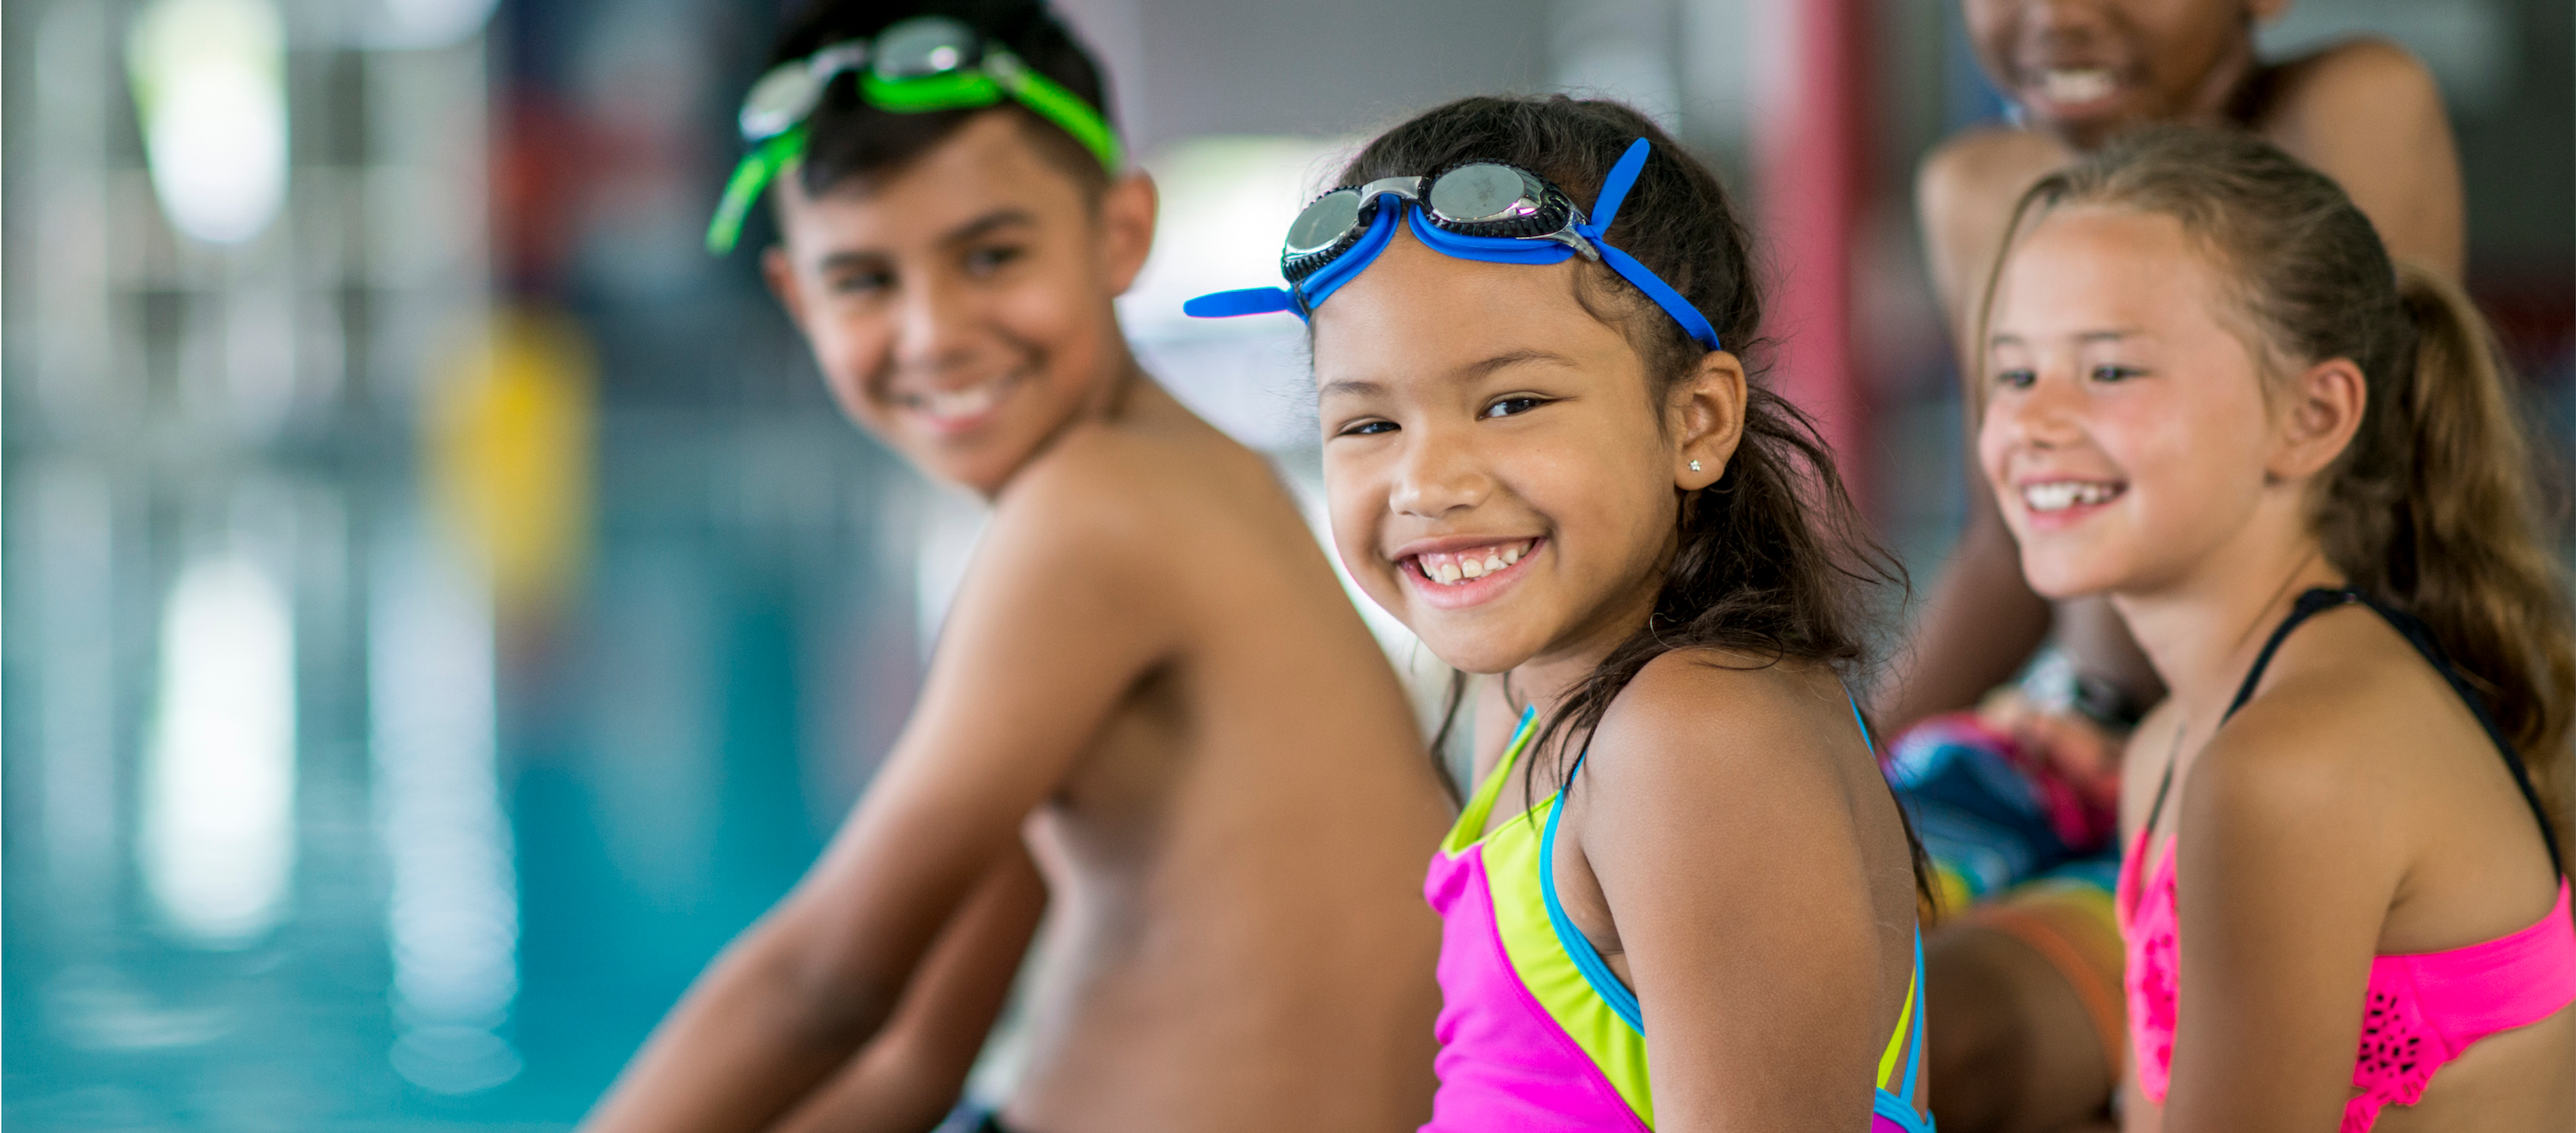 https://www.swmtf-ymca.org/sites/default/files/revslider/image/Swim%20Lesson%20Landing%20Page%20Program%20Header%20Photo%20copy.png